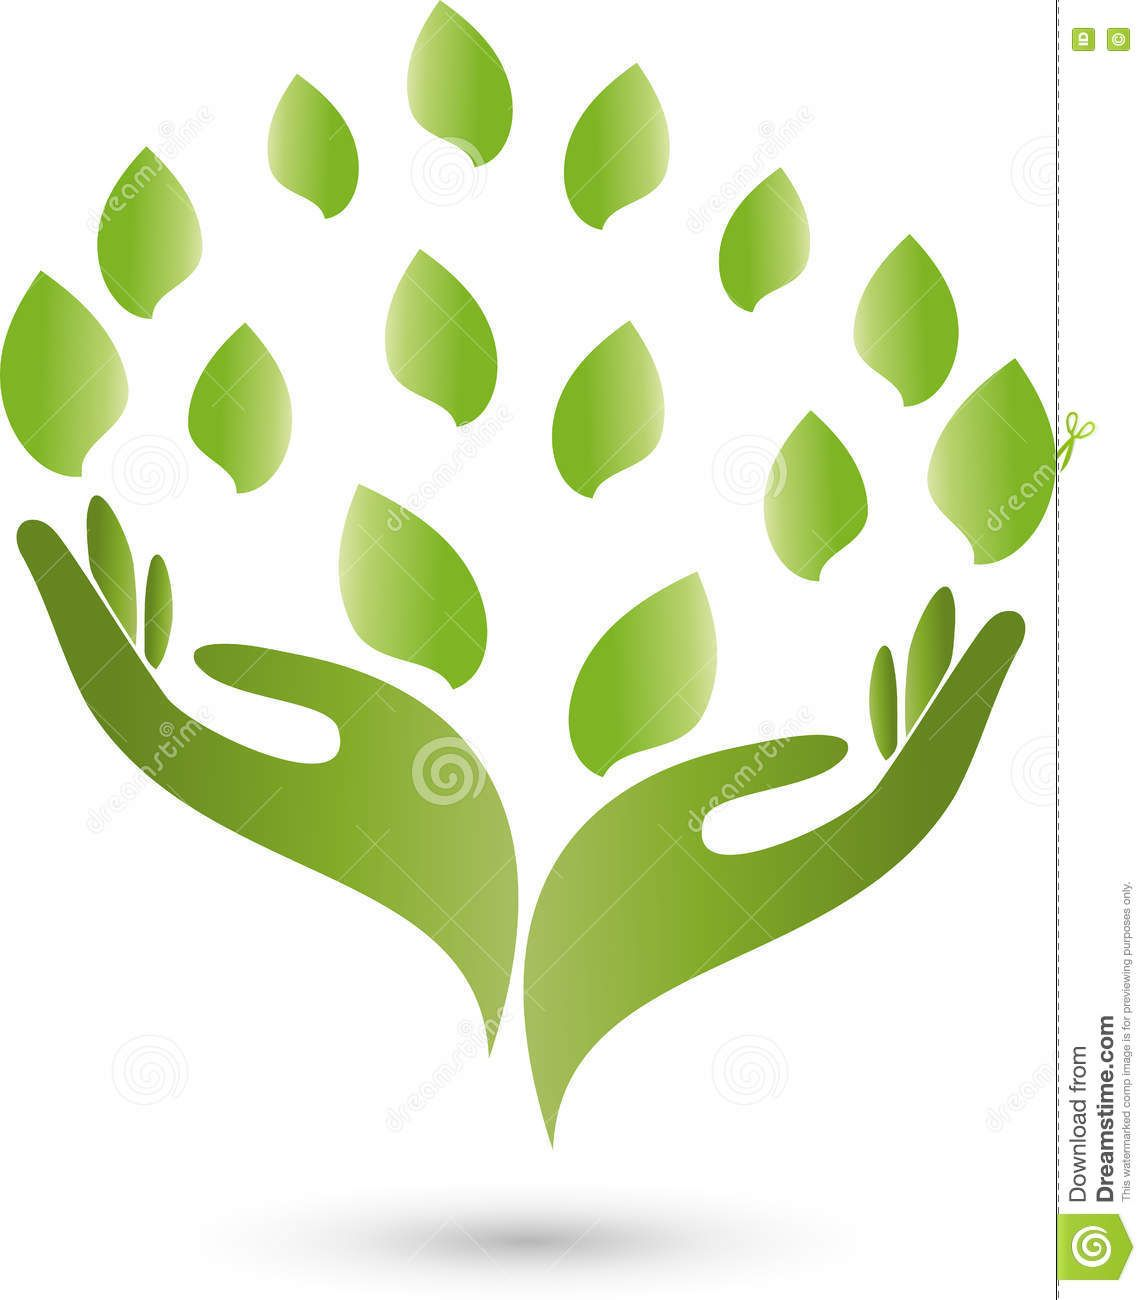 Hands, leaves, naturopath and nature logo.